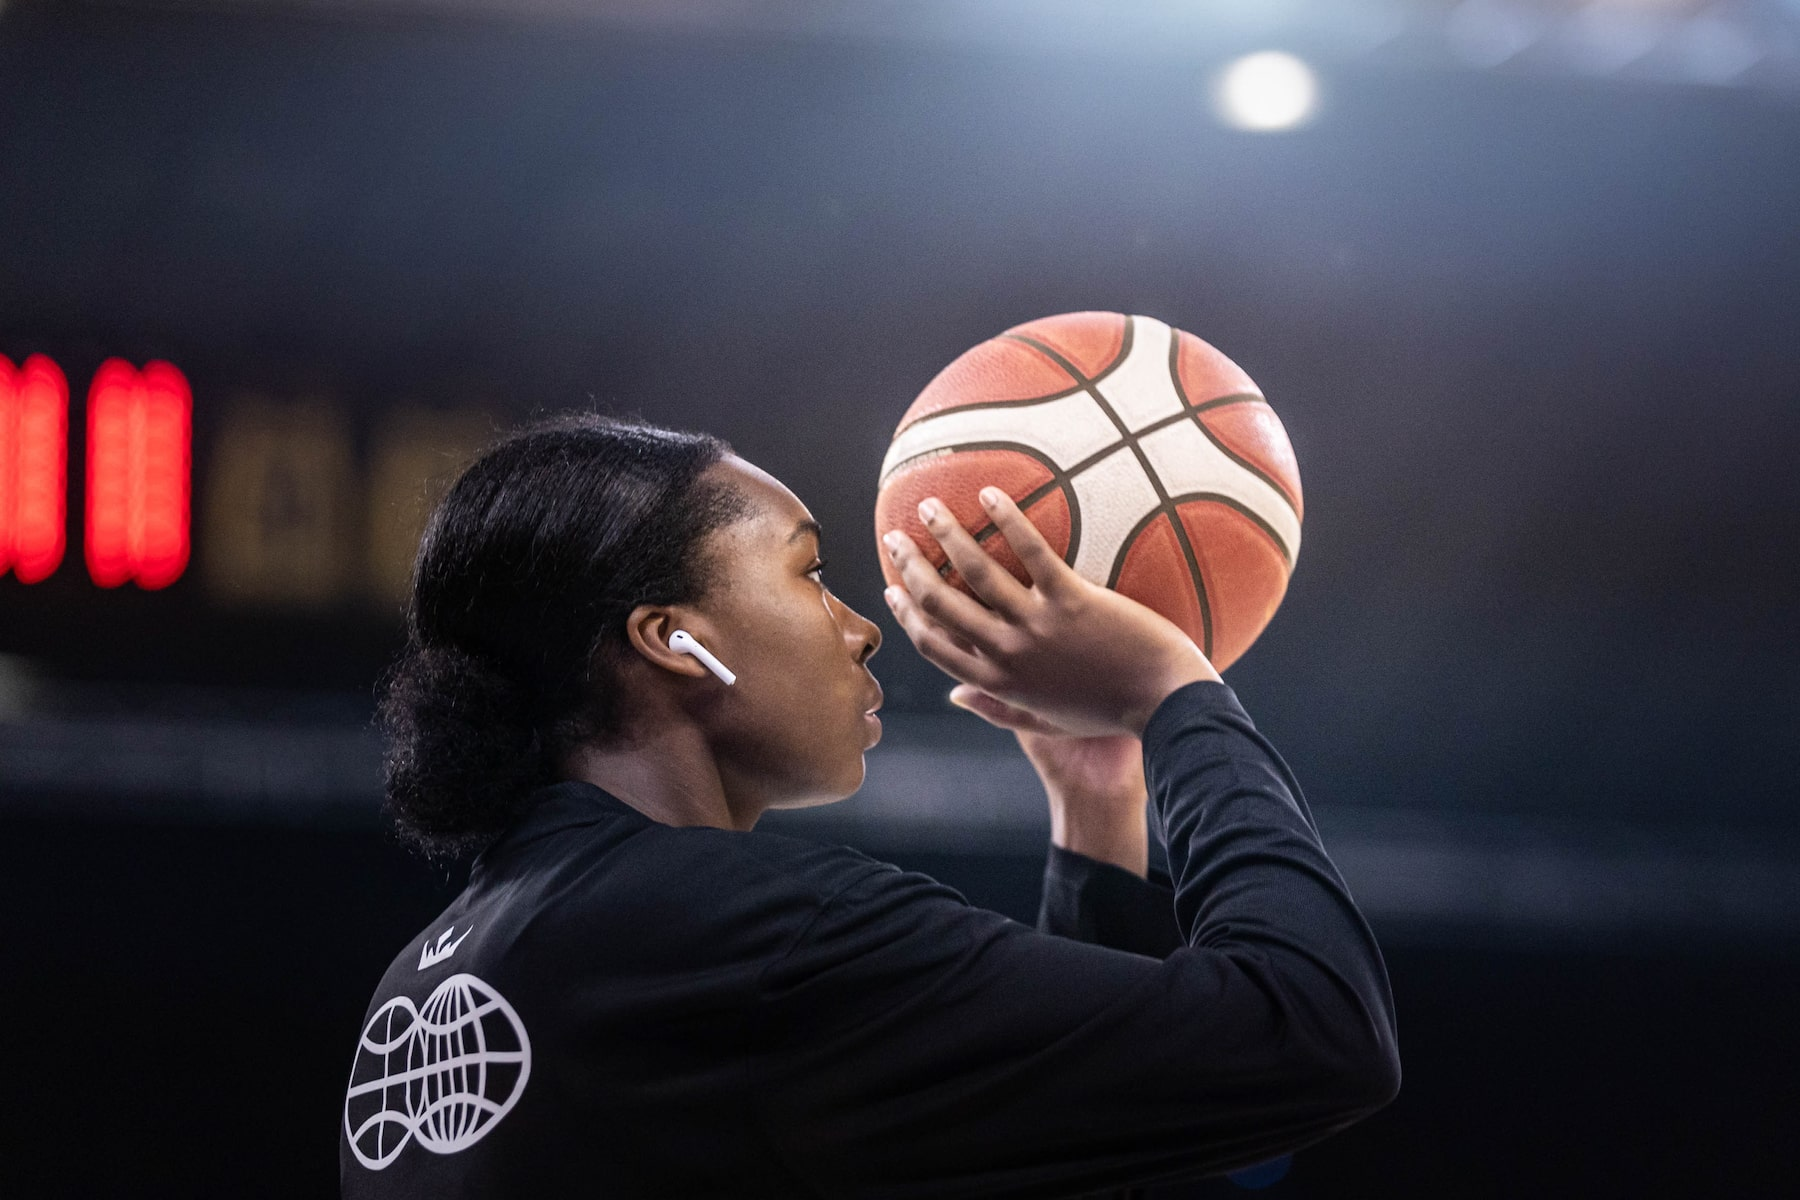 Lions women return to WBBL action on Saturday